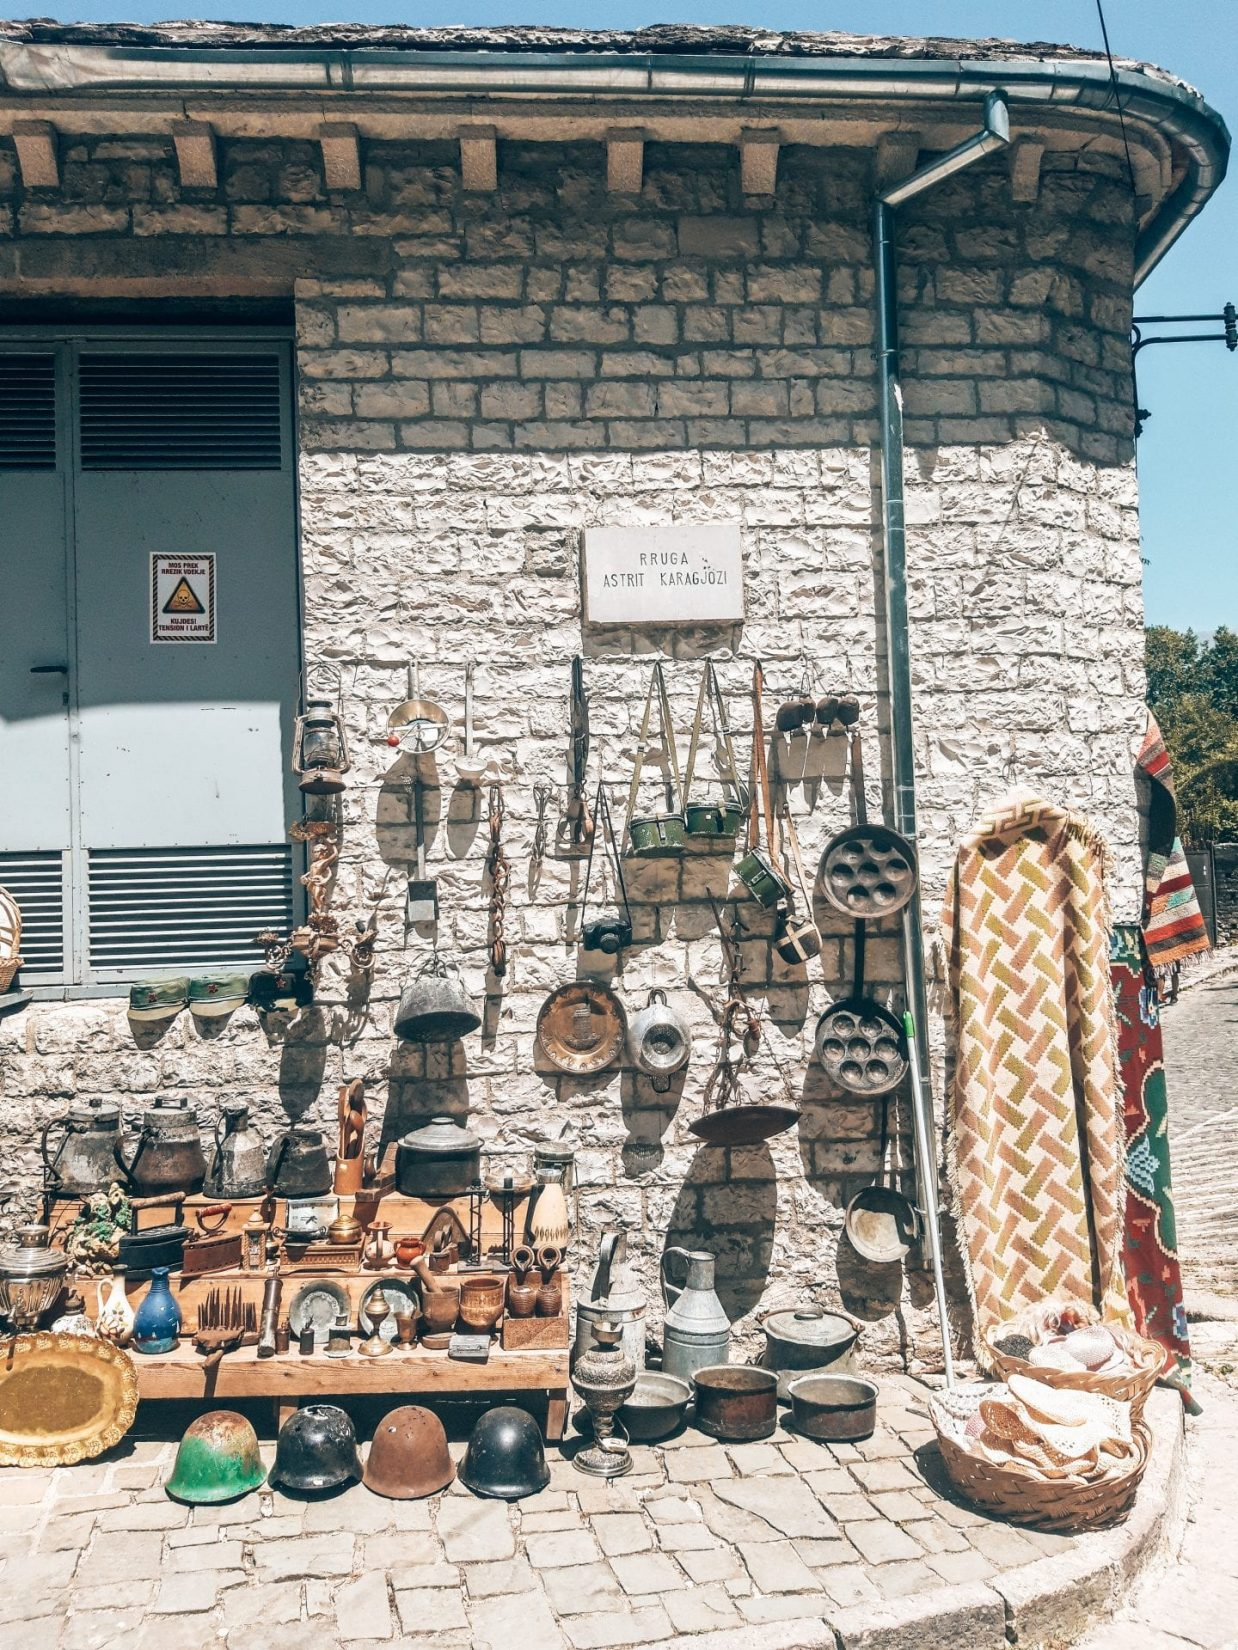 The Best Albanian Souvenirs to Buy!